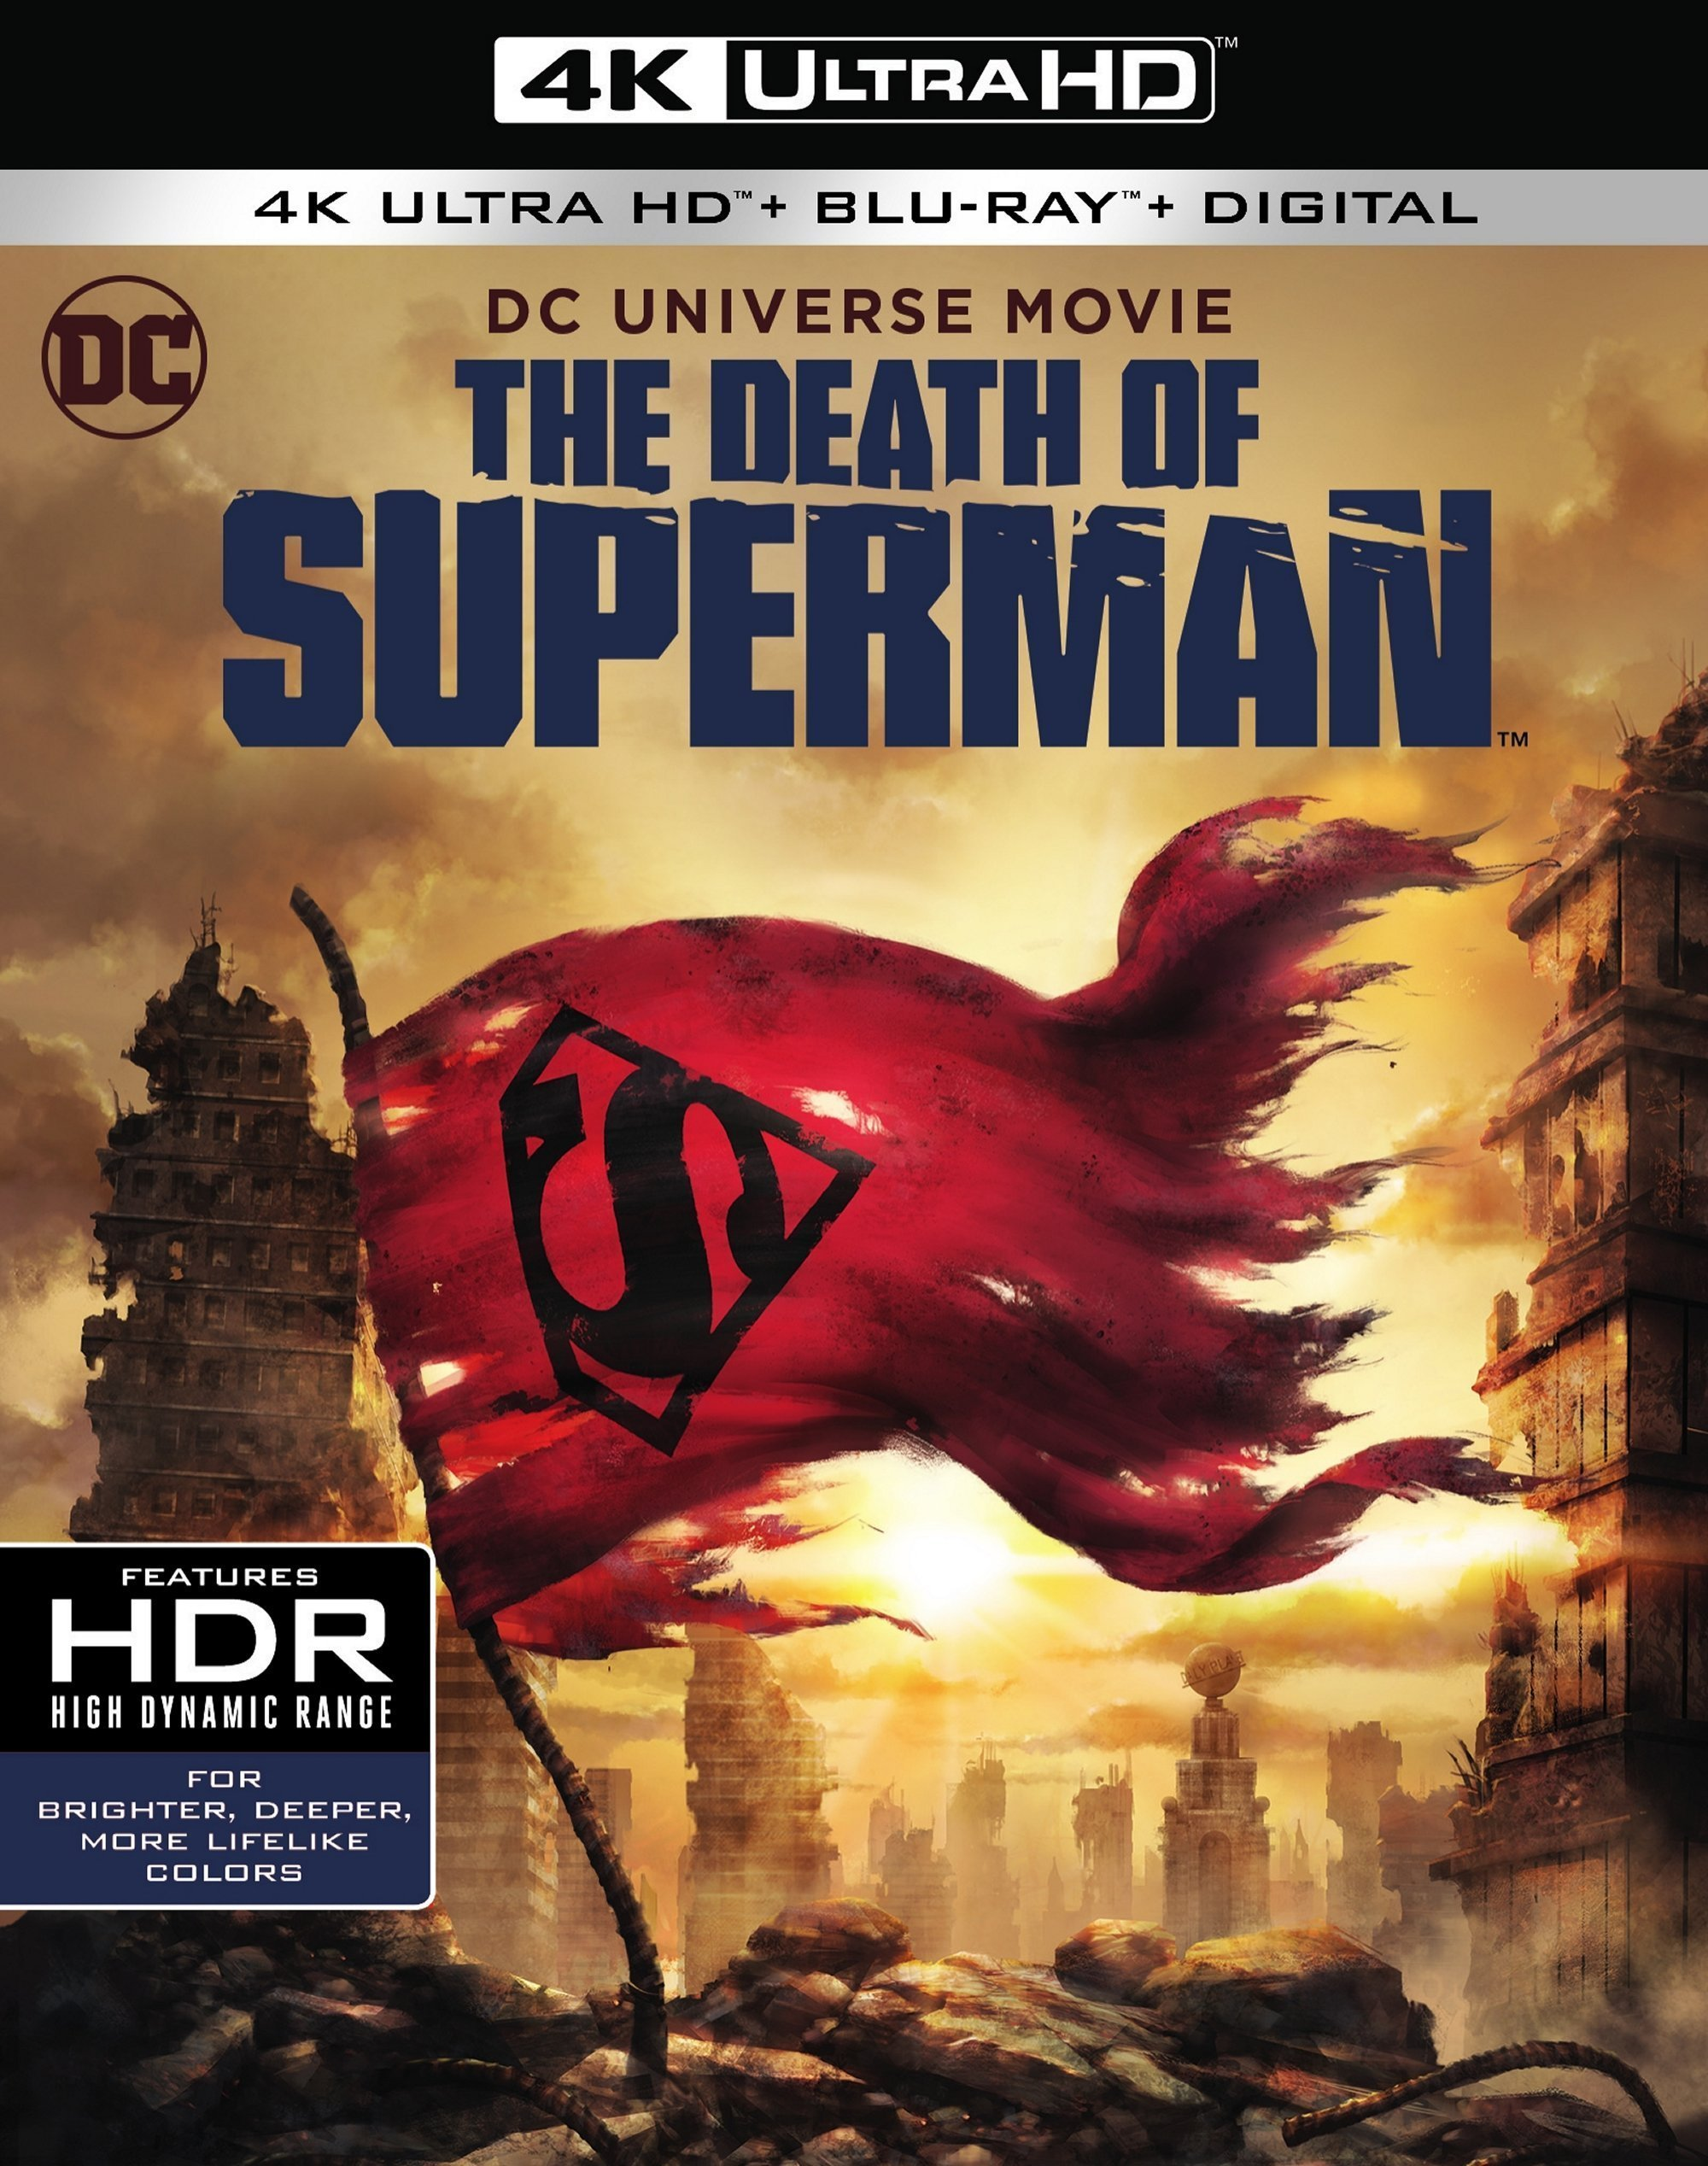 The Death of Superman 4K (2018) Ultra HD Blu-ray